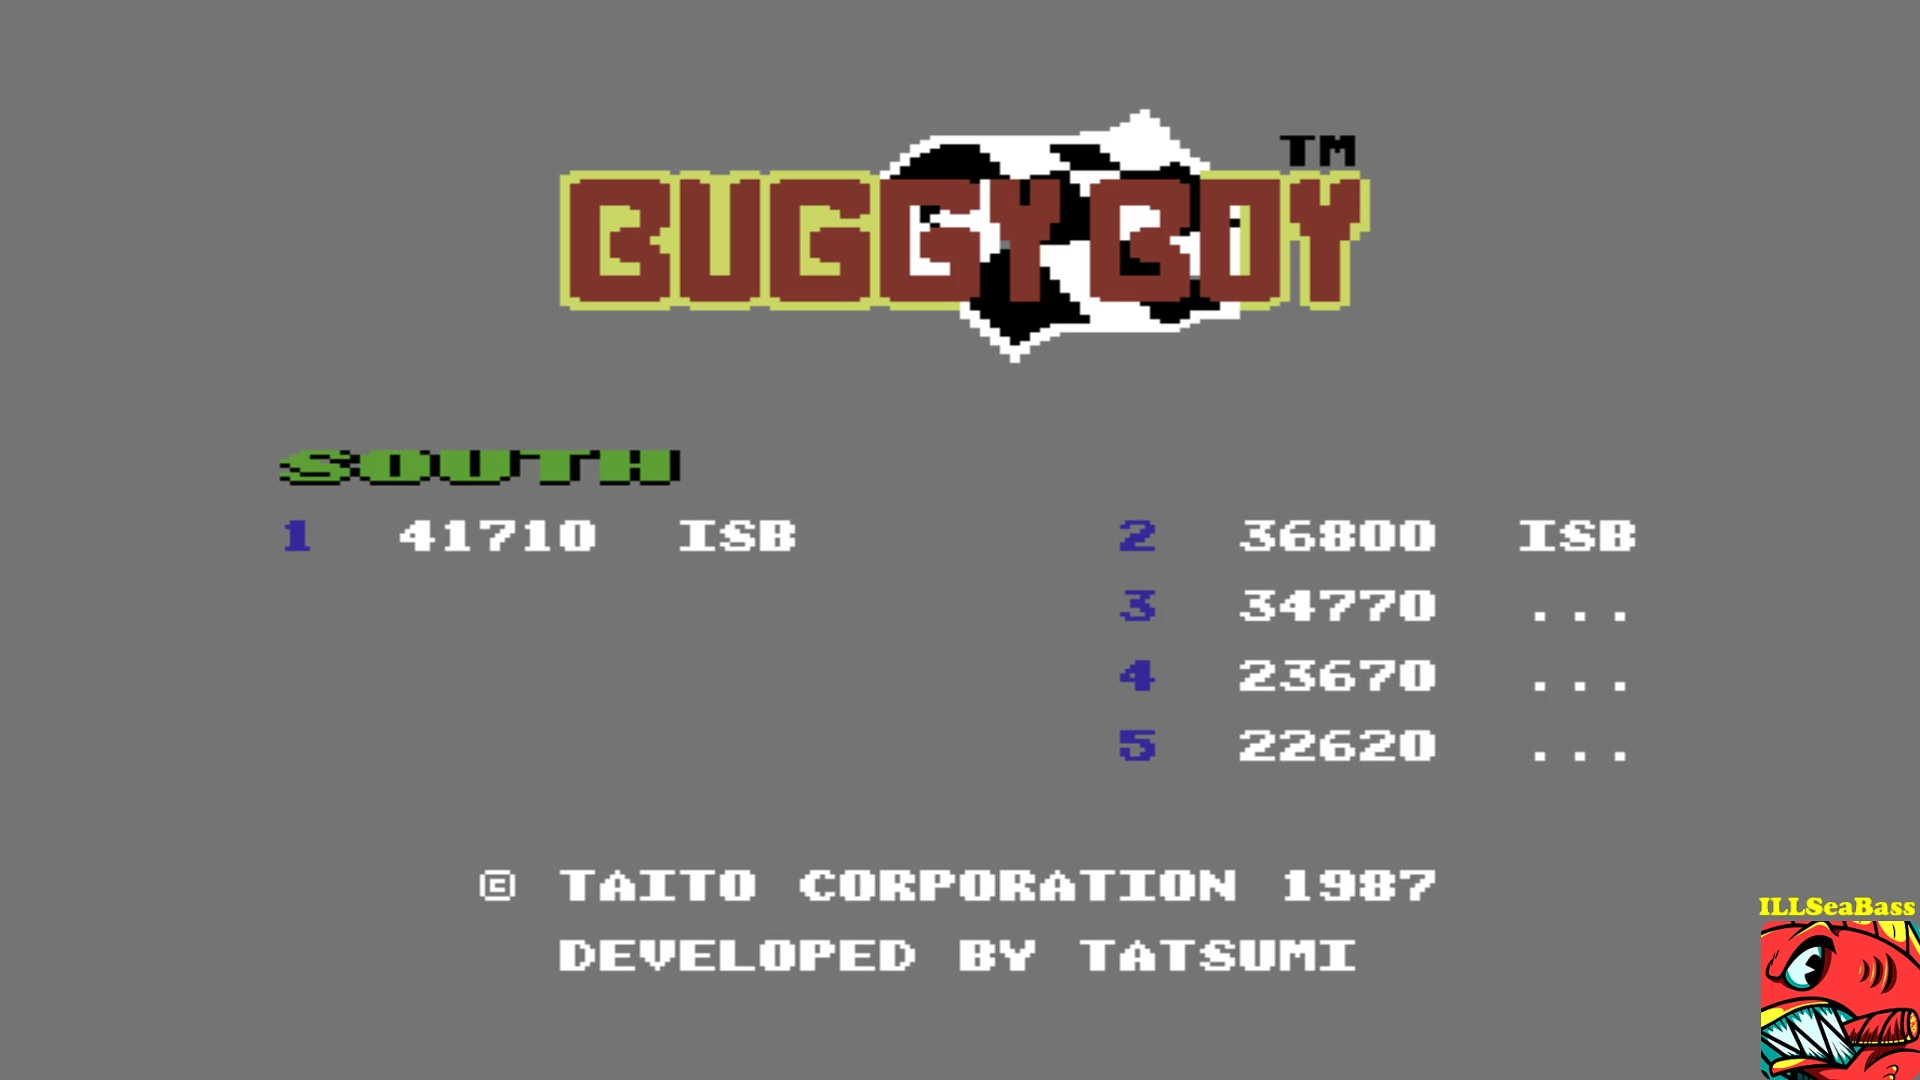 ILLSeaBass: Buggy Boy: South (Commodore 64 Emulated) 41,710 points on 2017-10-19 21:49:37